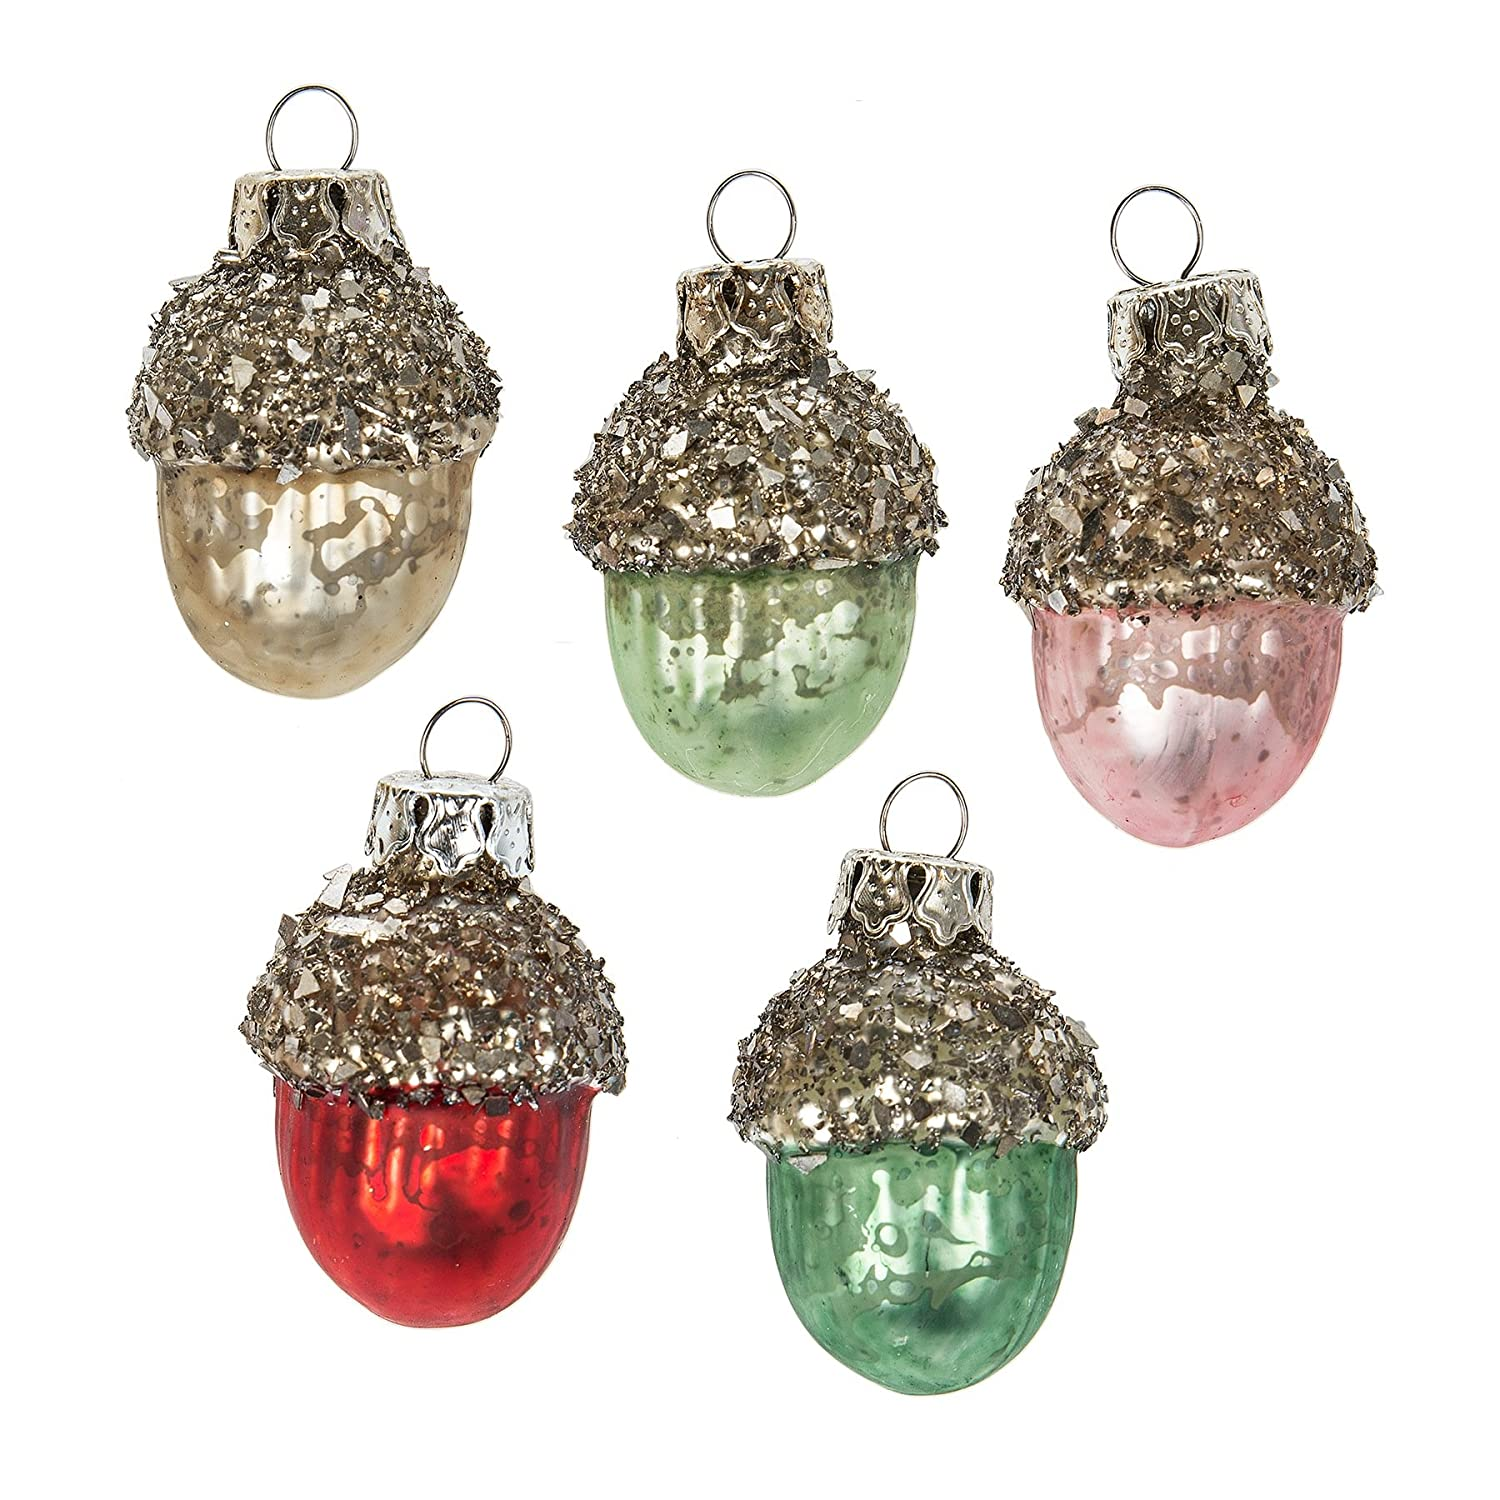 Christmas Tablescape Décor - Assorted pastel vintage mini acorn traditional glass Christmas ornaments - Set of 6